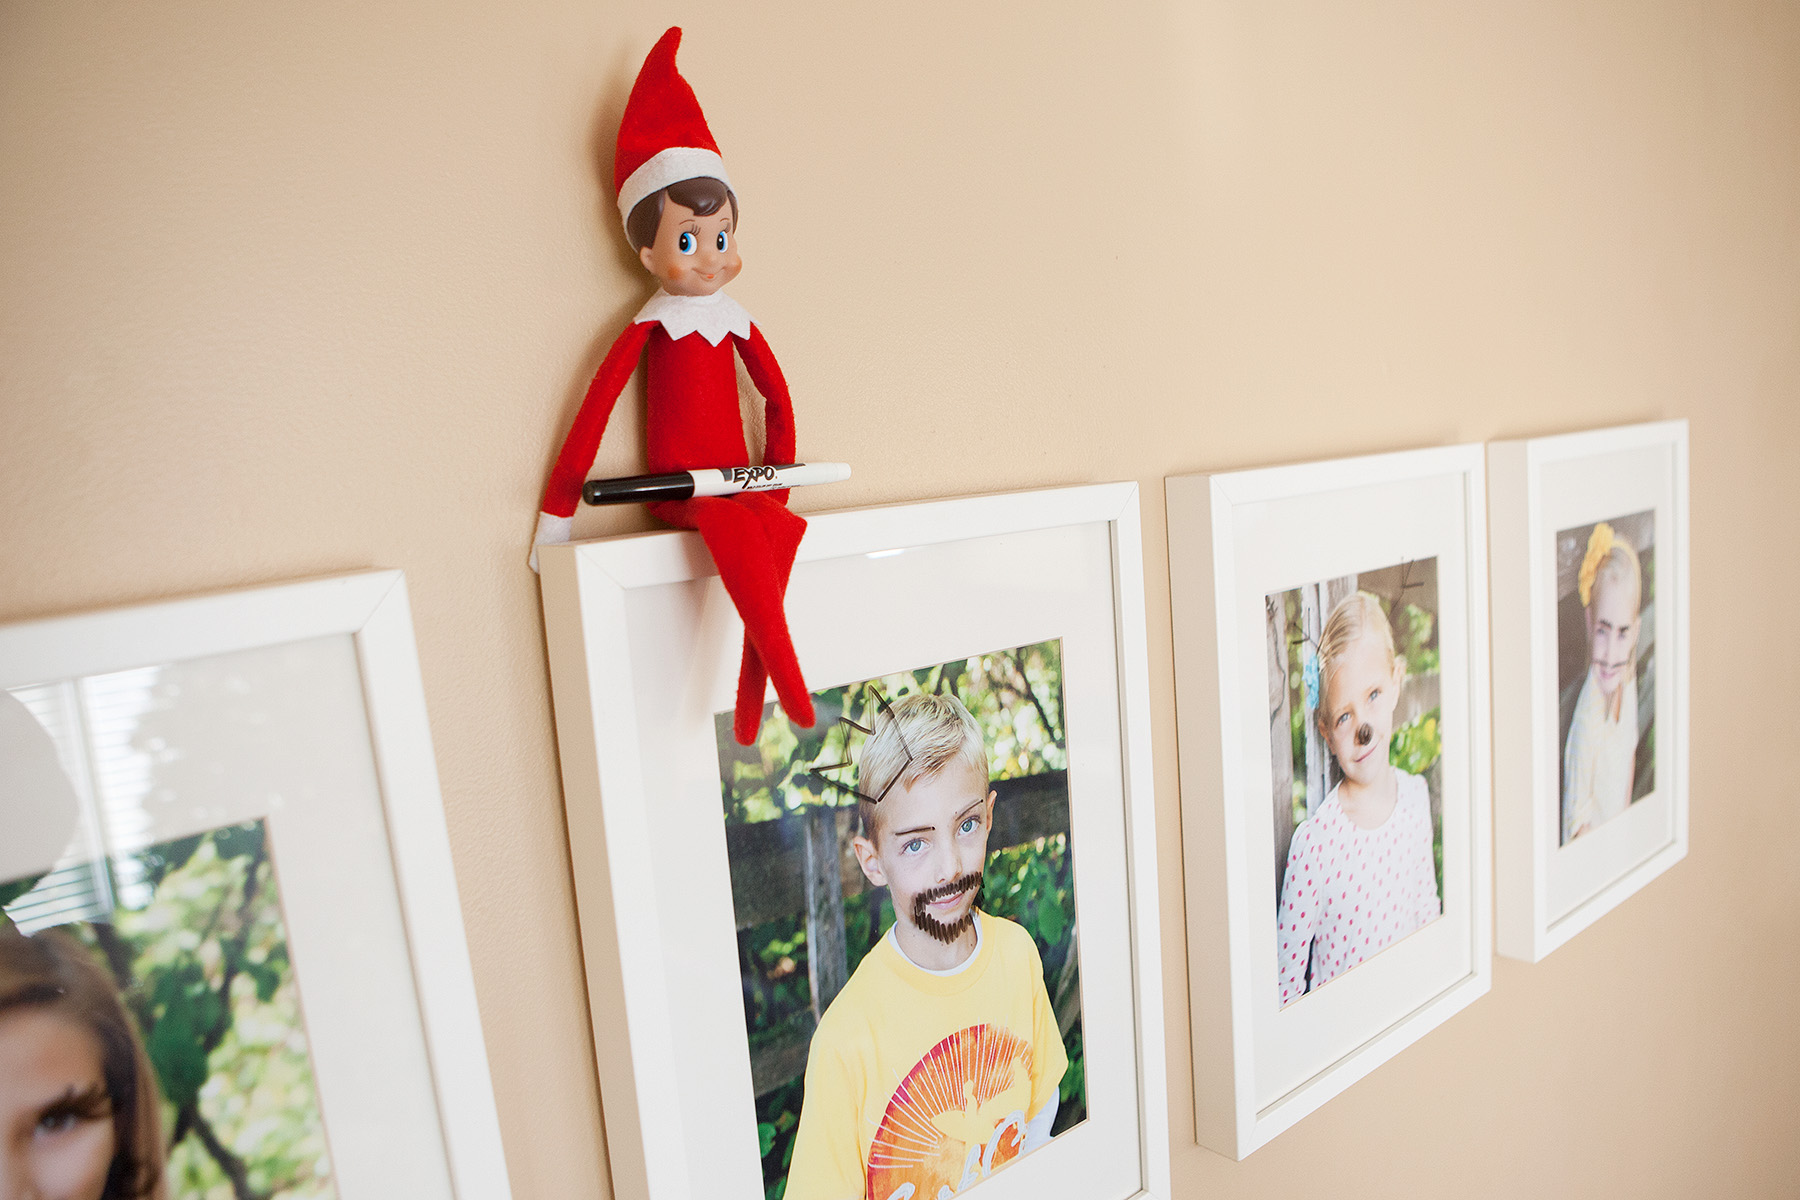 Elf draws silly faces on framed photos with dry erase marker.